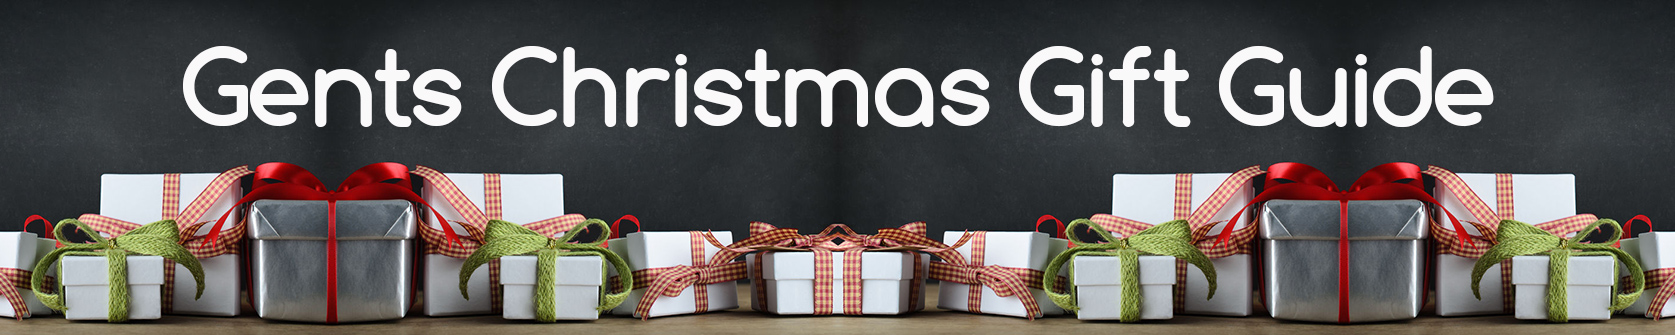 gents-christmas-gift-guide